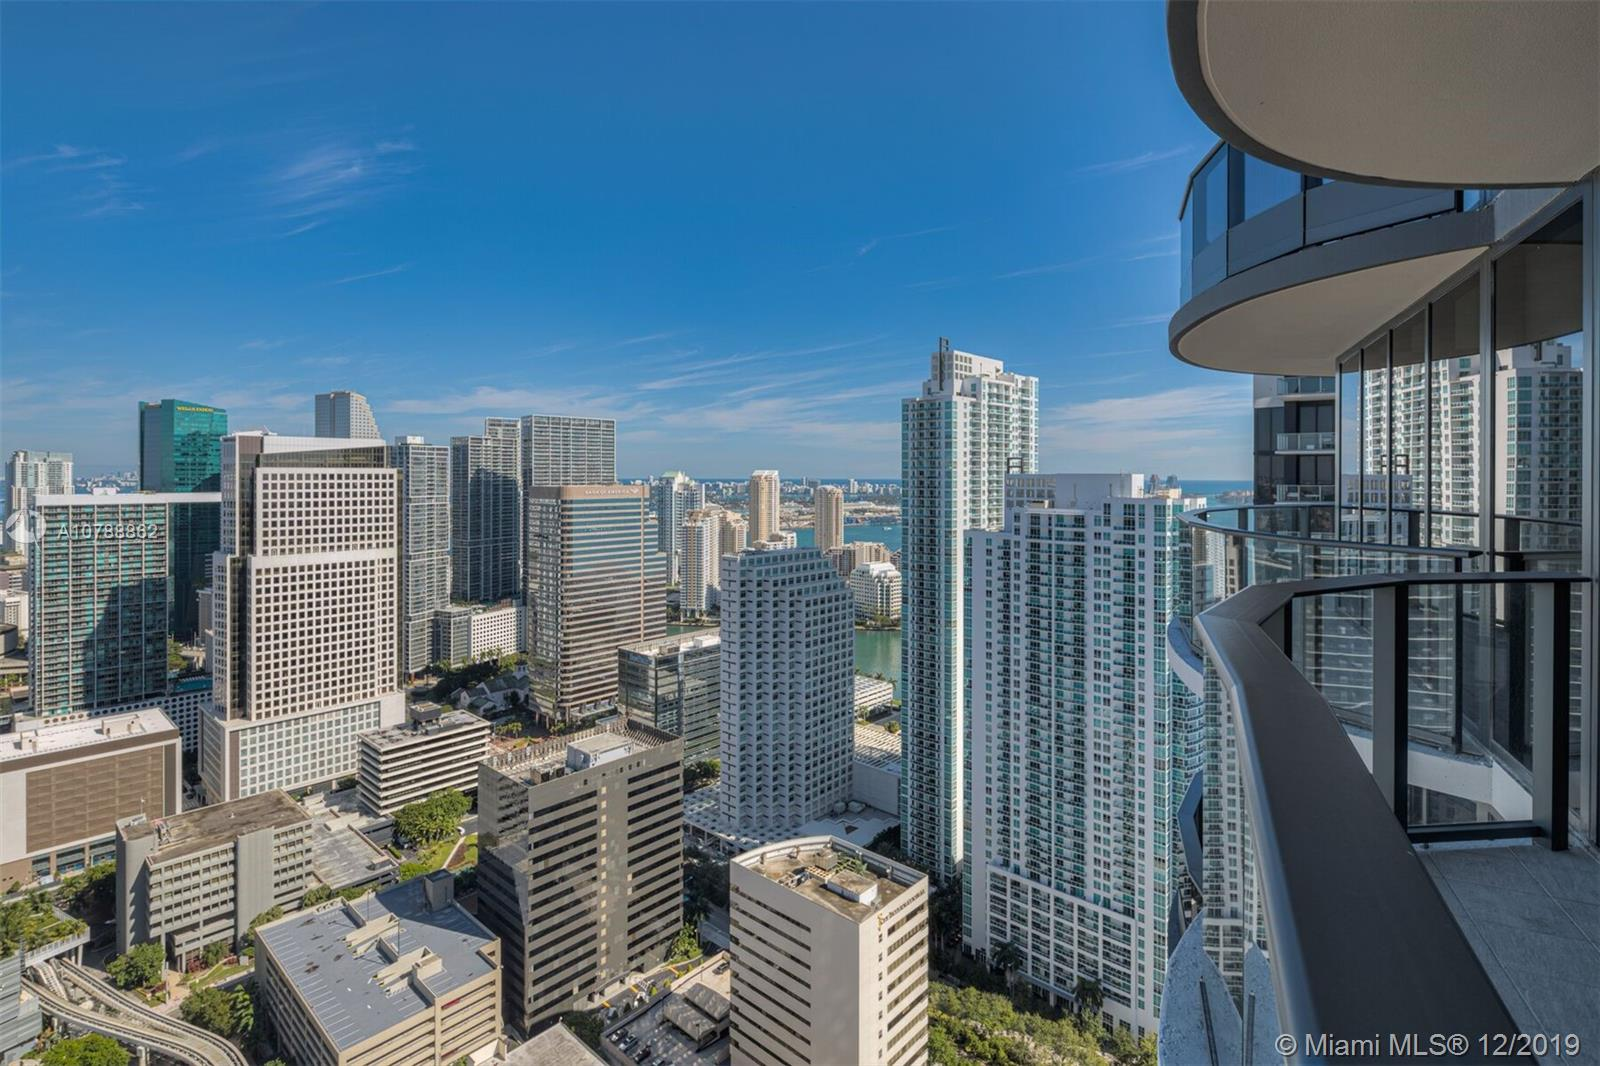 Spectacular brand new  corner unit at the iconic Brickell Flatiron. 2bedrooms / 2.5 baths plus DEN! Top of the line Miele appliances, Nest system thermostat, Italian doors, Glass-enclosed showers,  9-foot ceiling heights, wrap around balcony with amazing views,  Live & play in this luxury building that offers some of the best amenities in the city: Sky club rooftop at the 64th floor offering sky Pool with 360-degree views of Miami & Biscayne Bay, fitness center with the best views of the city, & Wellness Center & Spa. Flatiron Club at 18th & 17th floors offering a private movie theater, outdoor lap pool, children's playroom, social lounge room, billiards room, & concierge service. EASY TO SHOW. it can come furnished or unfurnished. PRICE RENT FURNISHED IS $7,500 PER MONTH (ANNUAL)